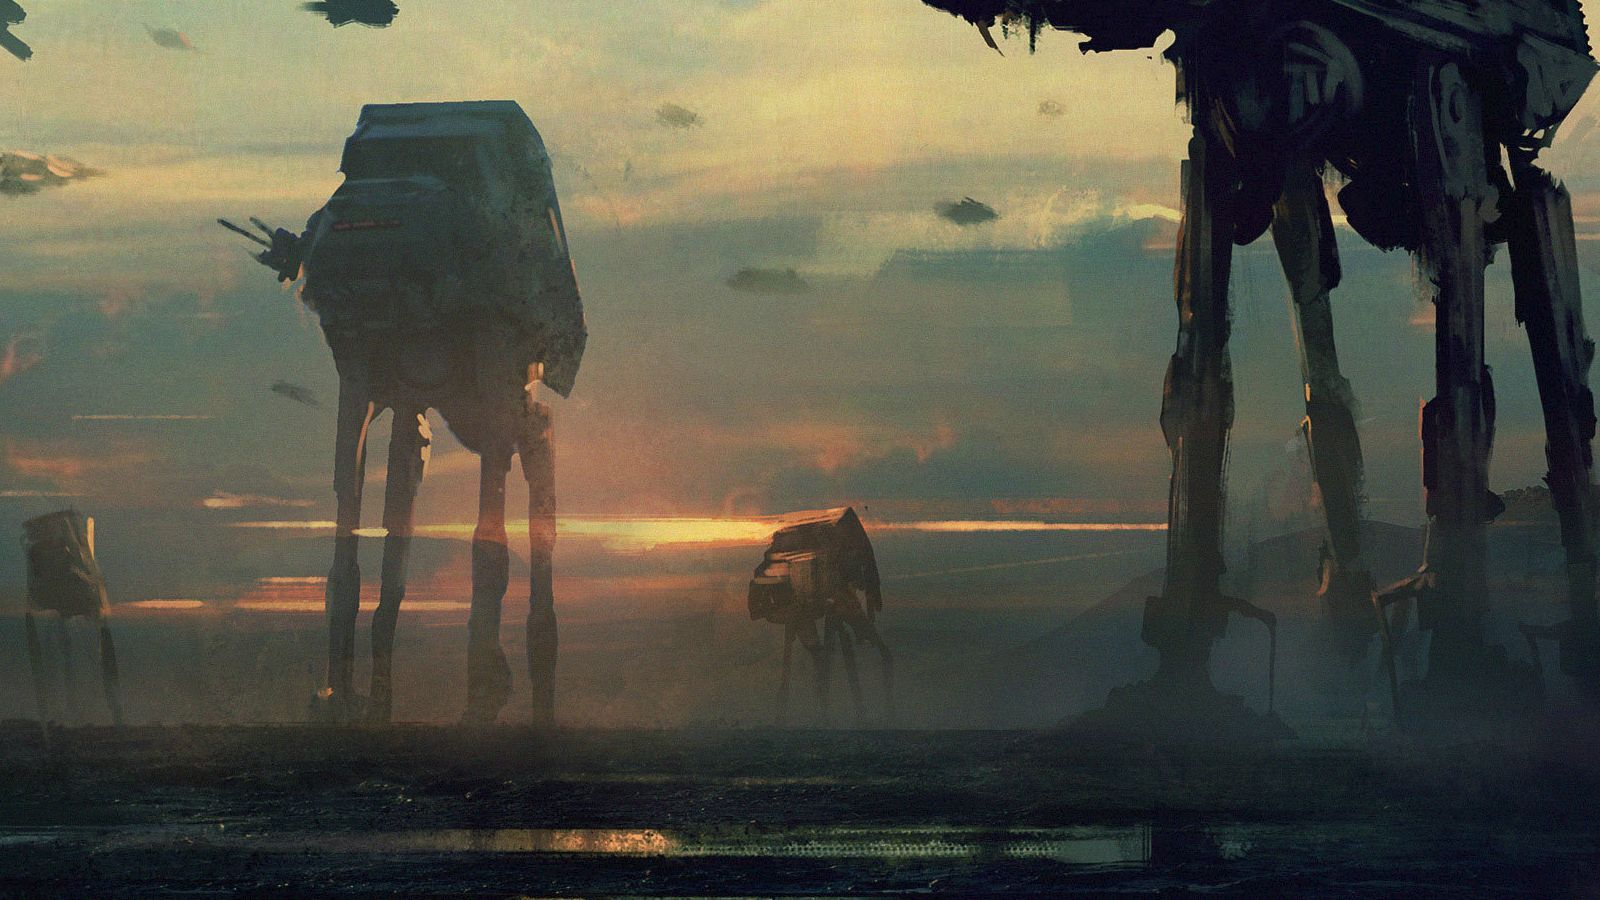 At At Walker Star Wars Gritty Concept Imgur Star Wars Painting Star Wars Art Star Wars Artwork